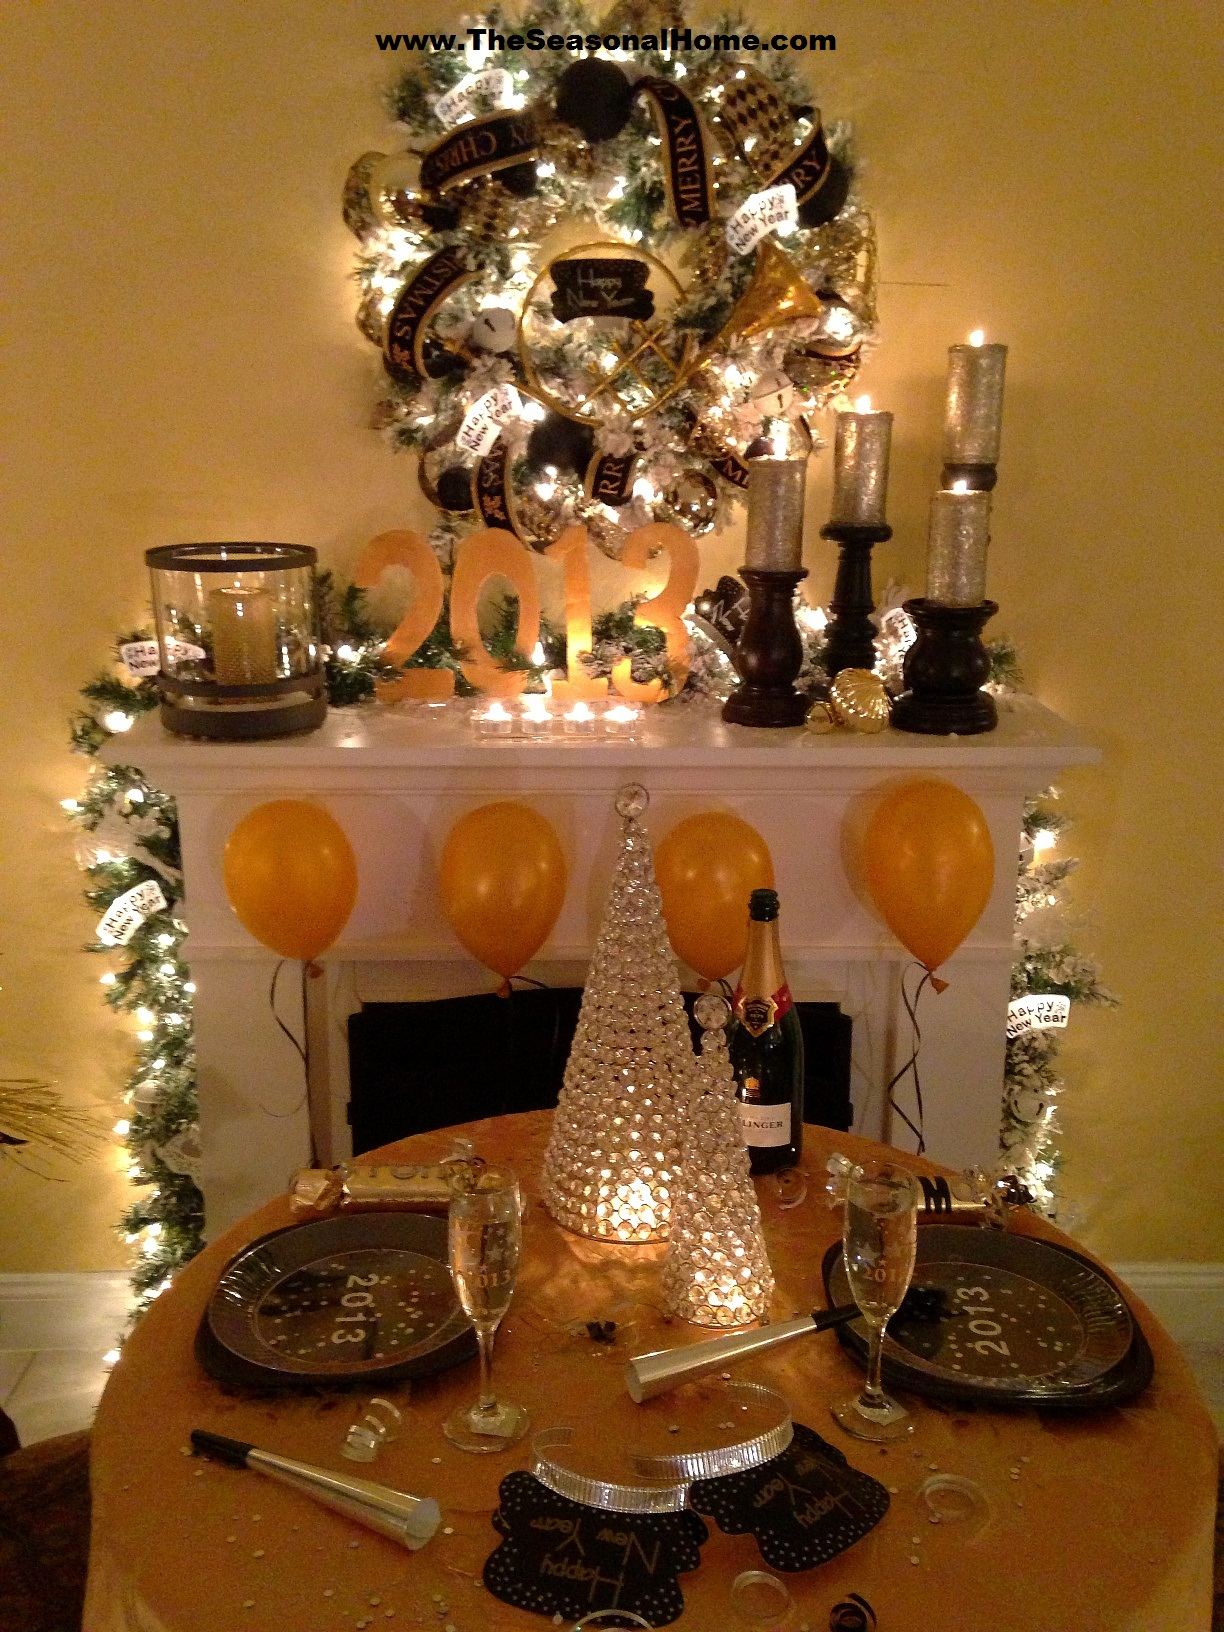 Cozy new year s eve dinner party at home the seasonal home for Home decorations for new year